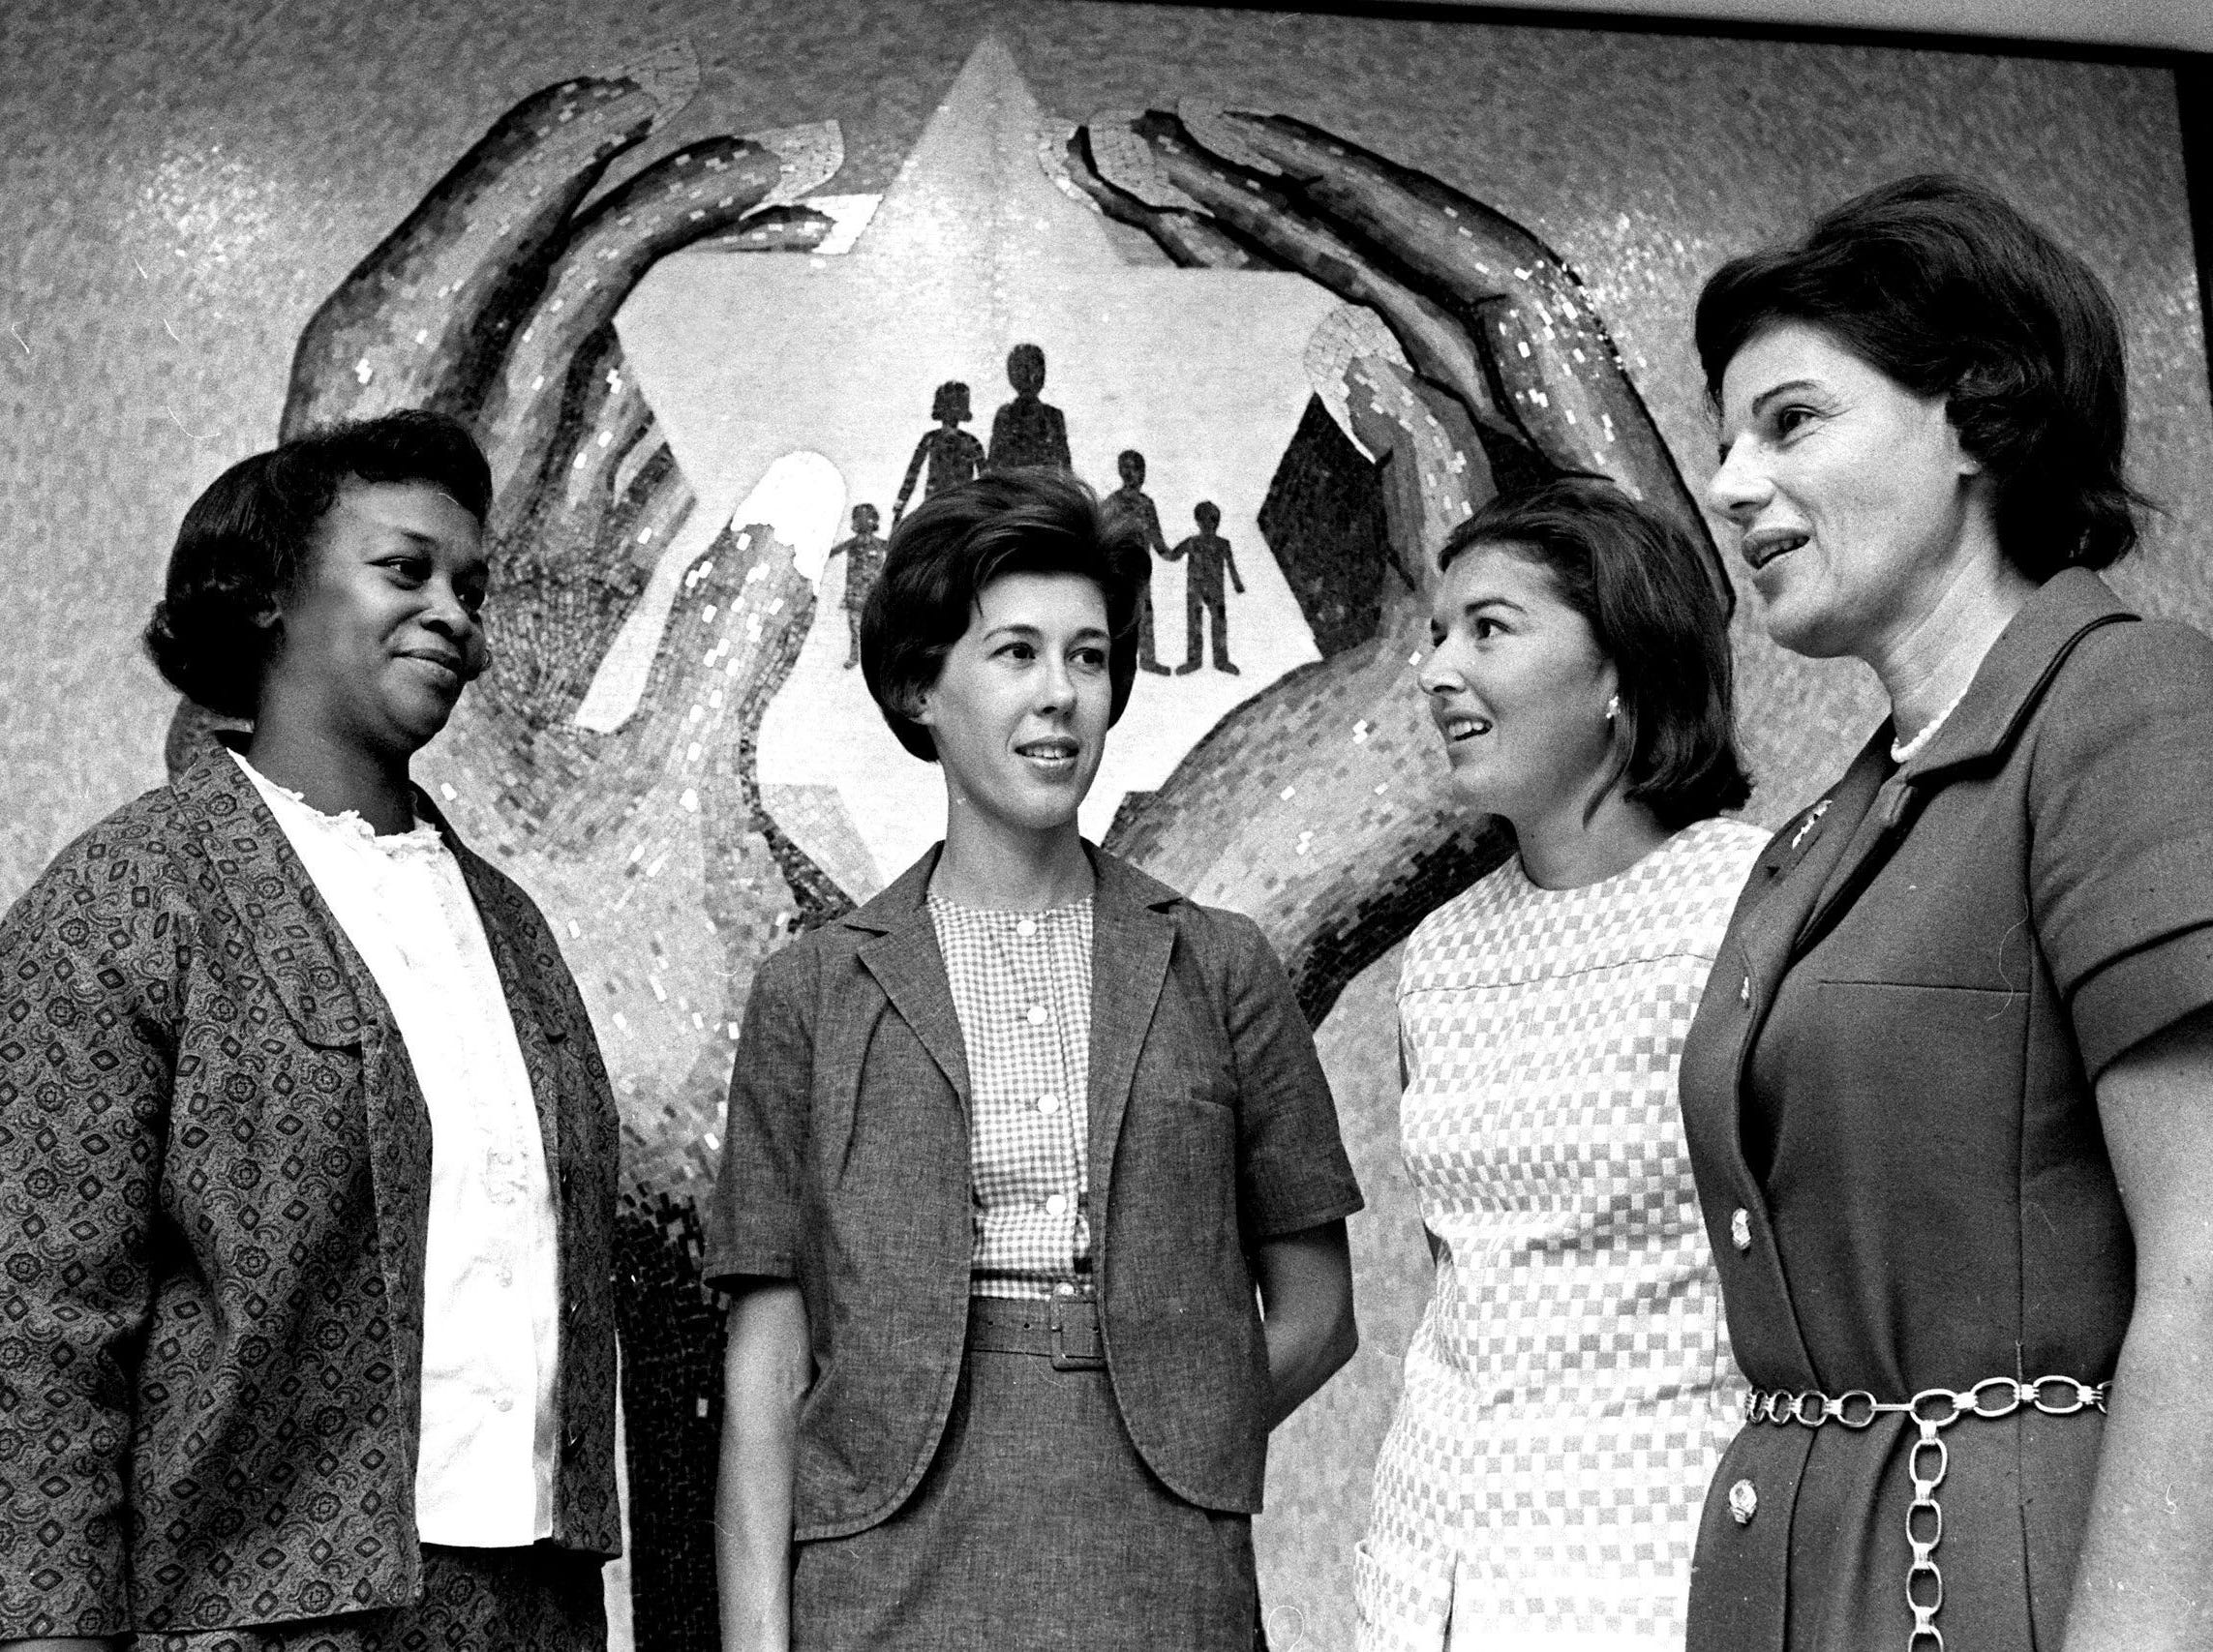 Meeting to discuss the organization of the Memphis Panel of American Women in September 1968 were (from left) Mrs. Elsie Rambo, Mrs. James C. Blackburn, Mrs. Frank Jones and Mrs. Sydney Geiger of Jackson, Miss., who led some of the discussions.  The group met at the Jewish Community Center at 6560 Poplar Avenue.